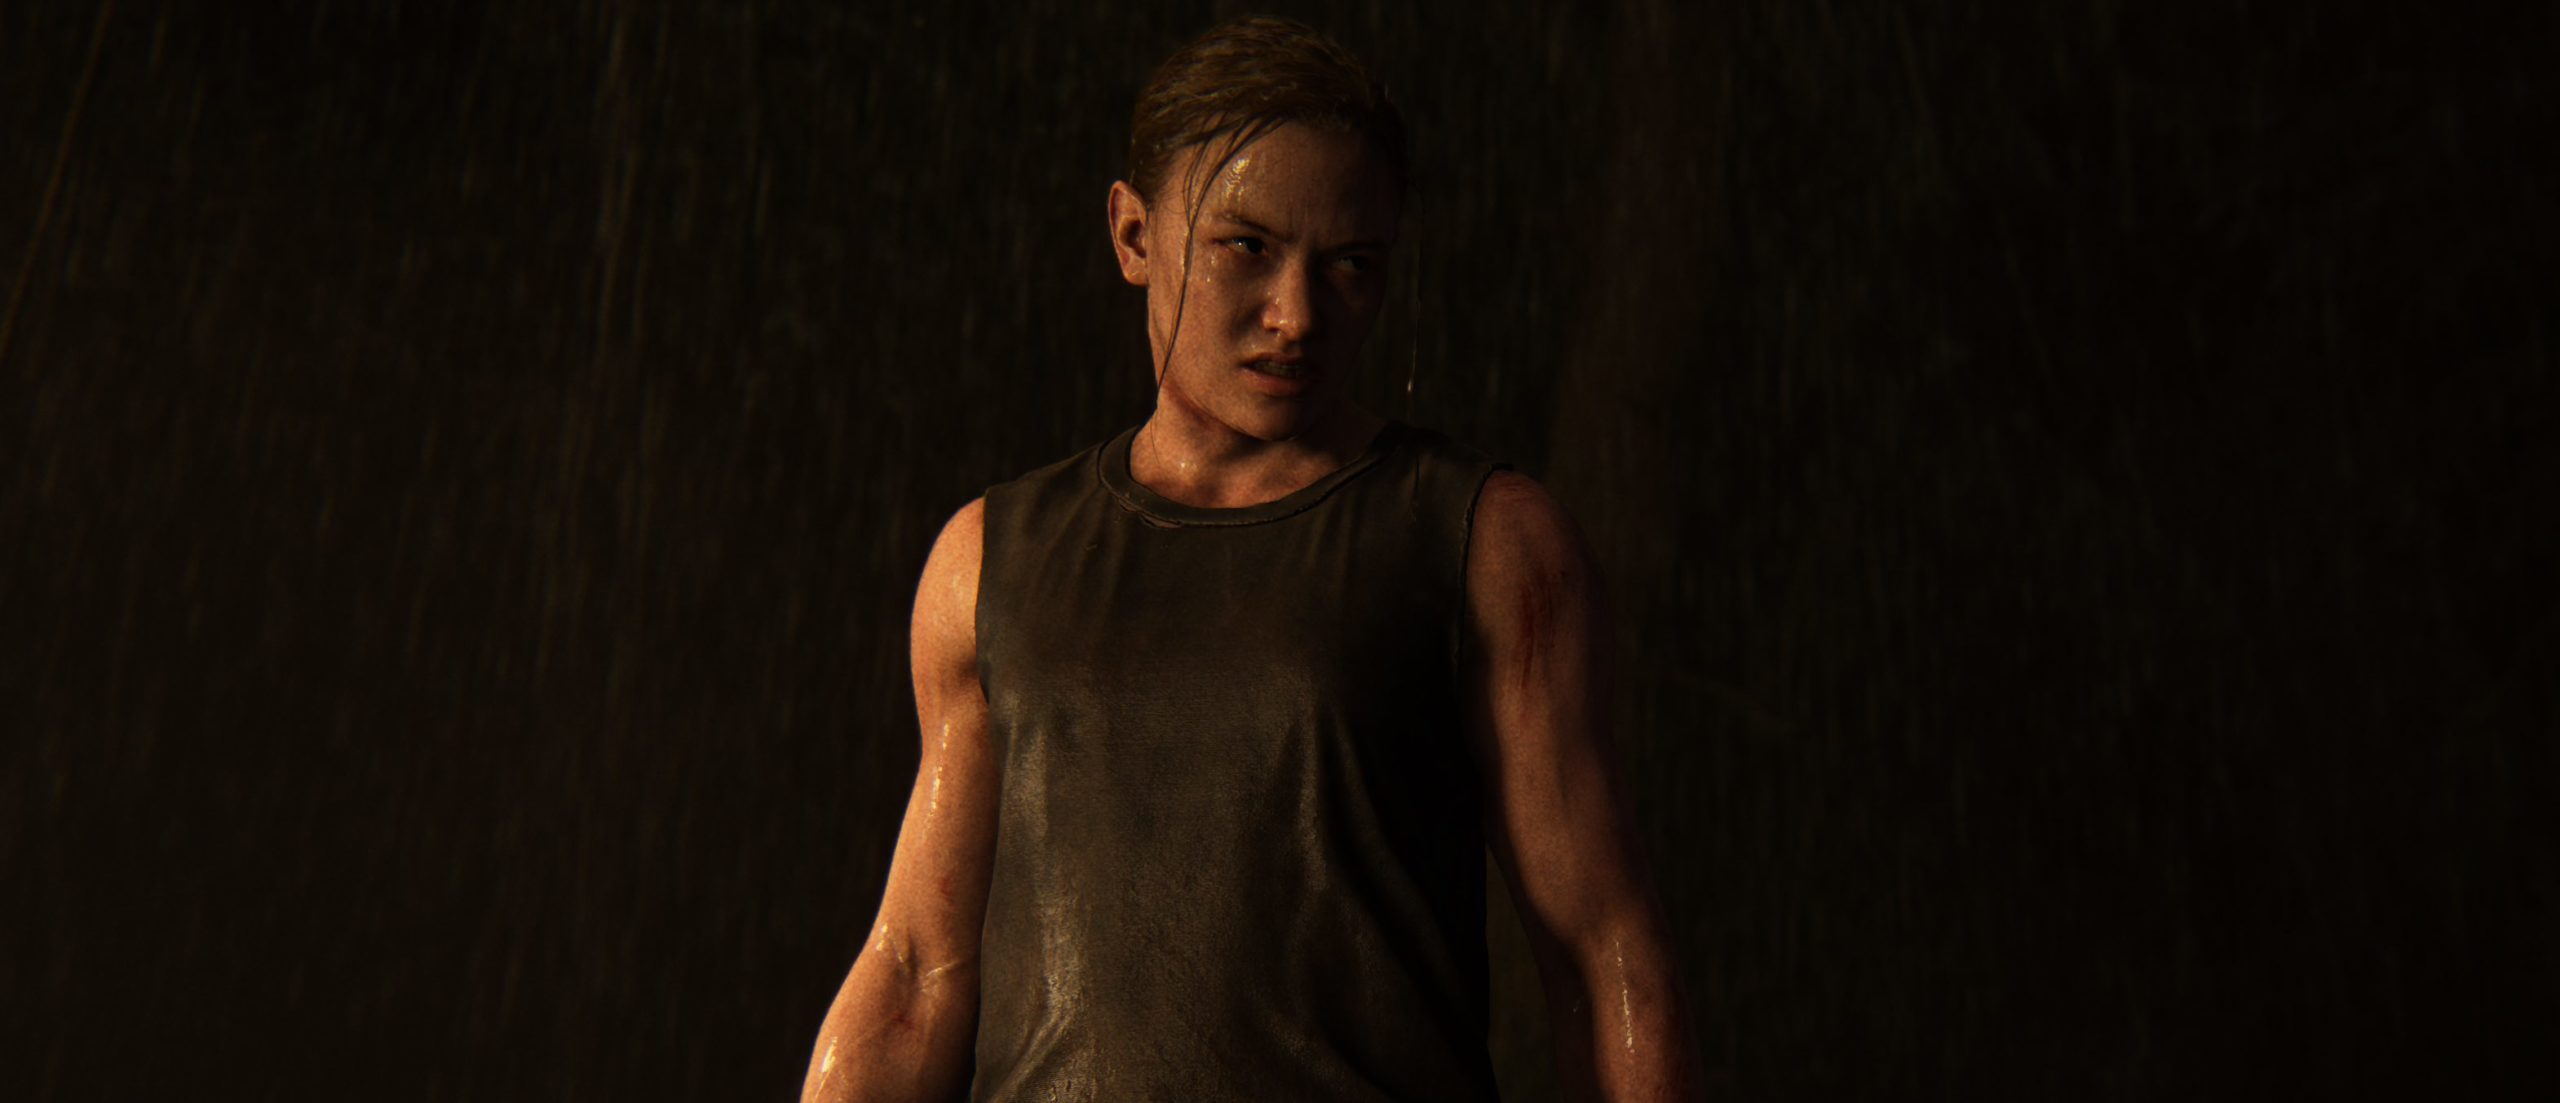 The New Trailer For Naughty Dog's The Last Of Us 2 Will Make You Squirm